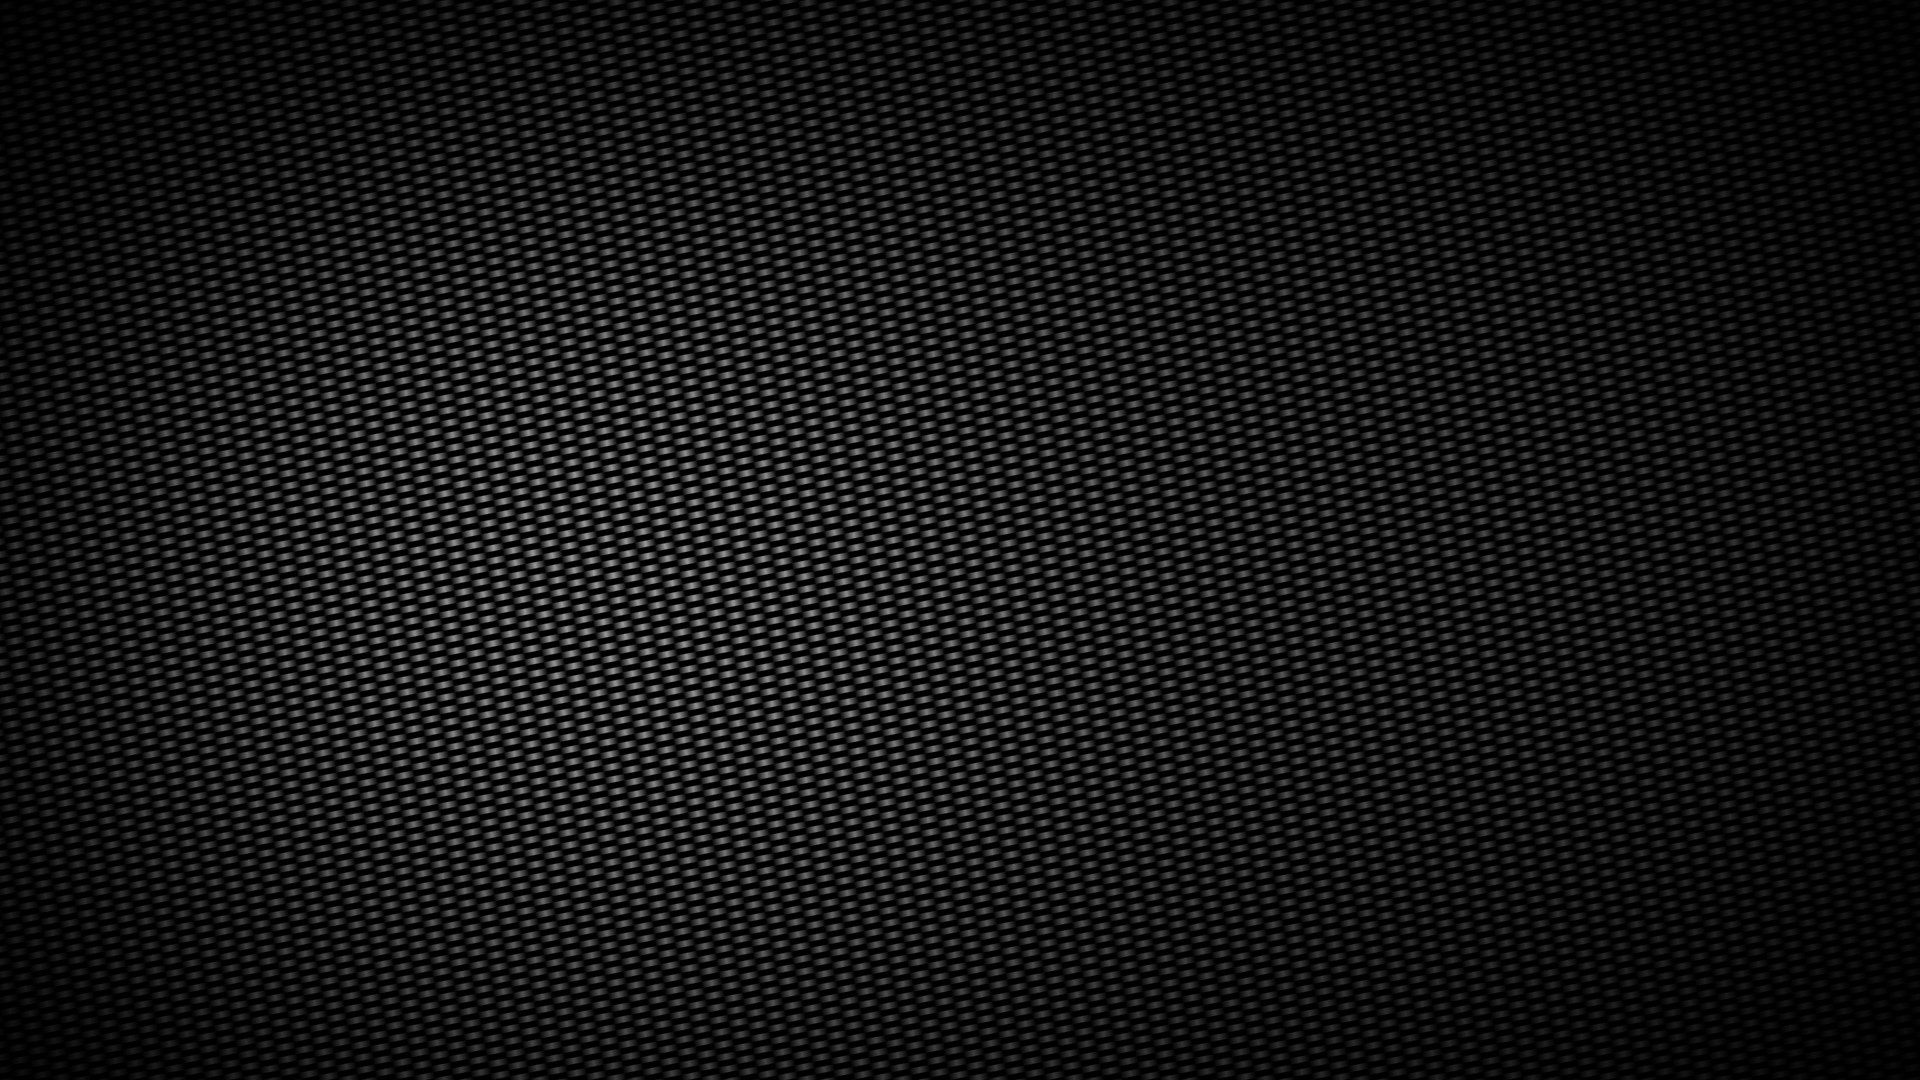 1920x1080 Download free carbon wallpapers for your mobile phone - most .